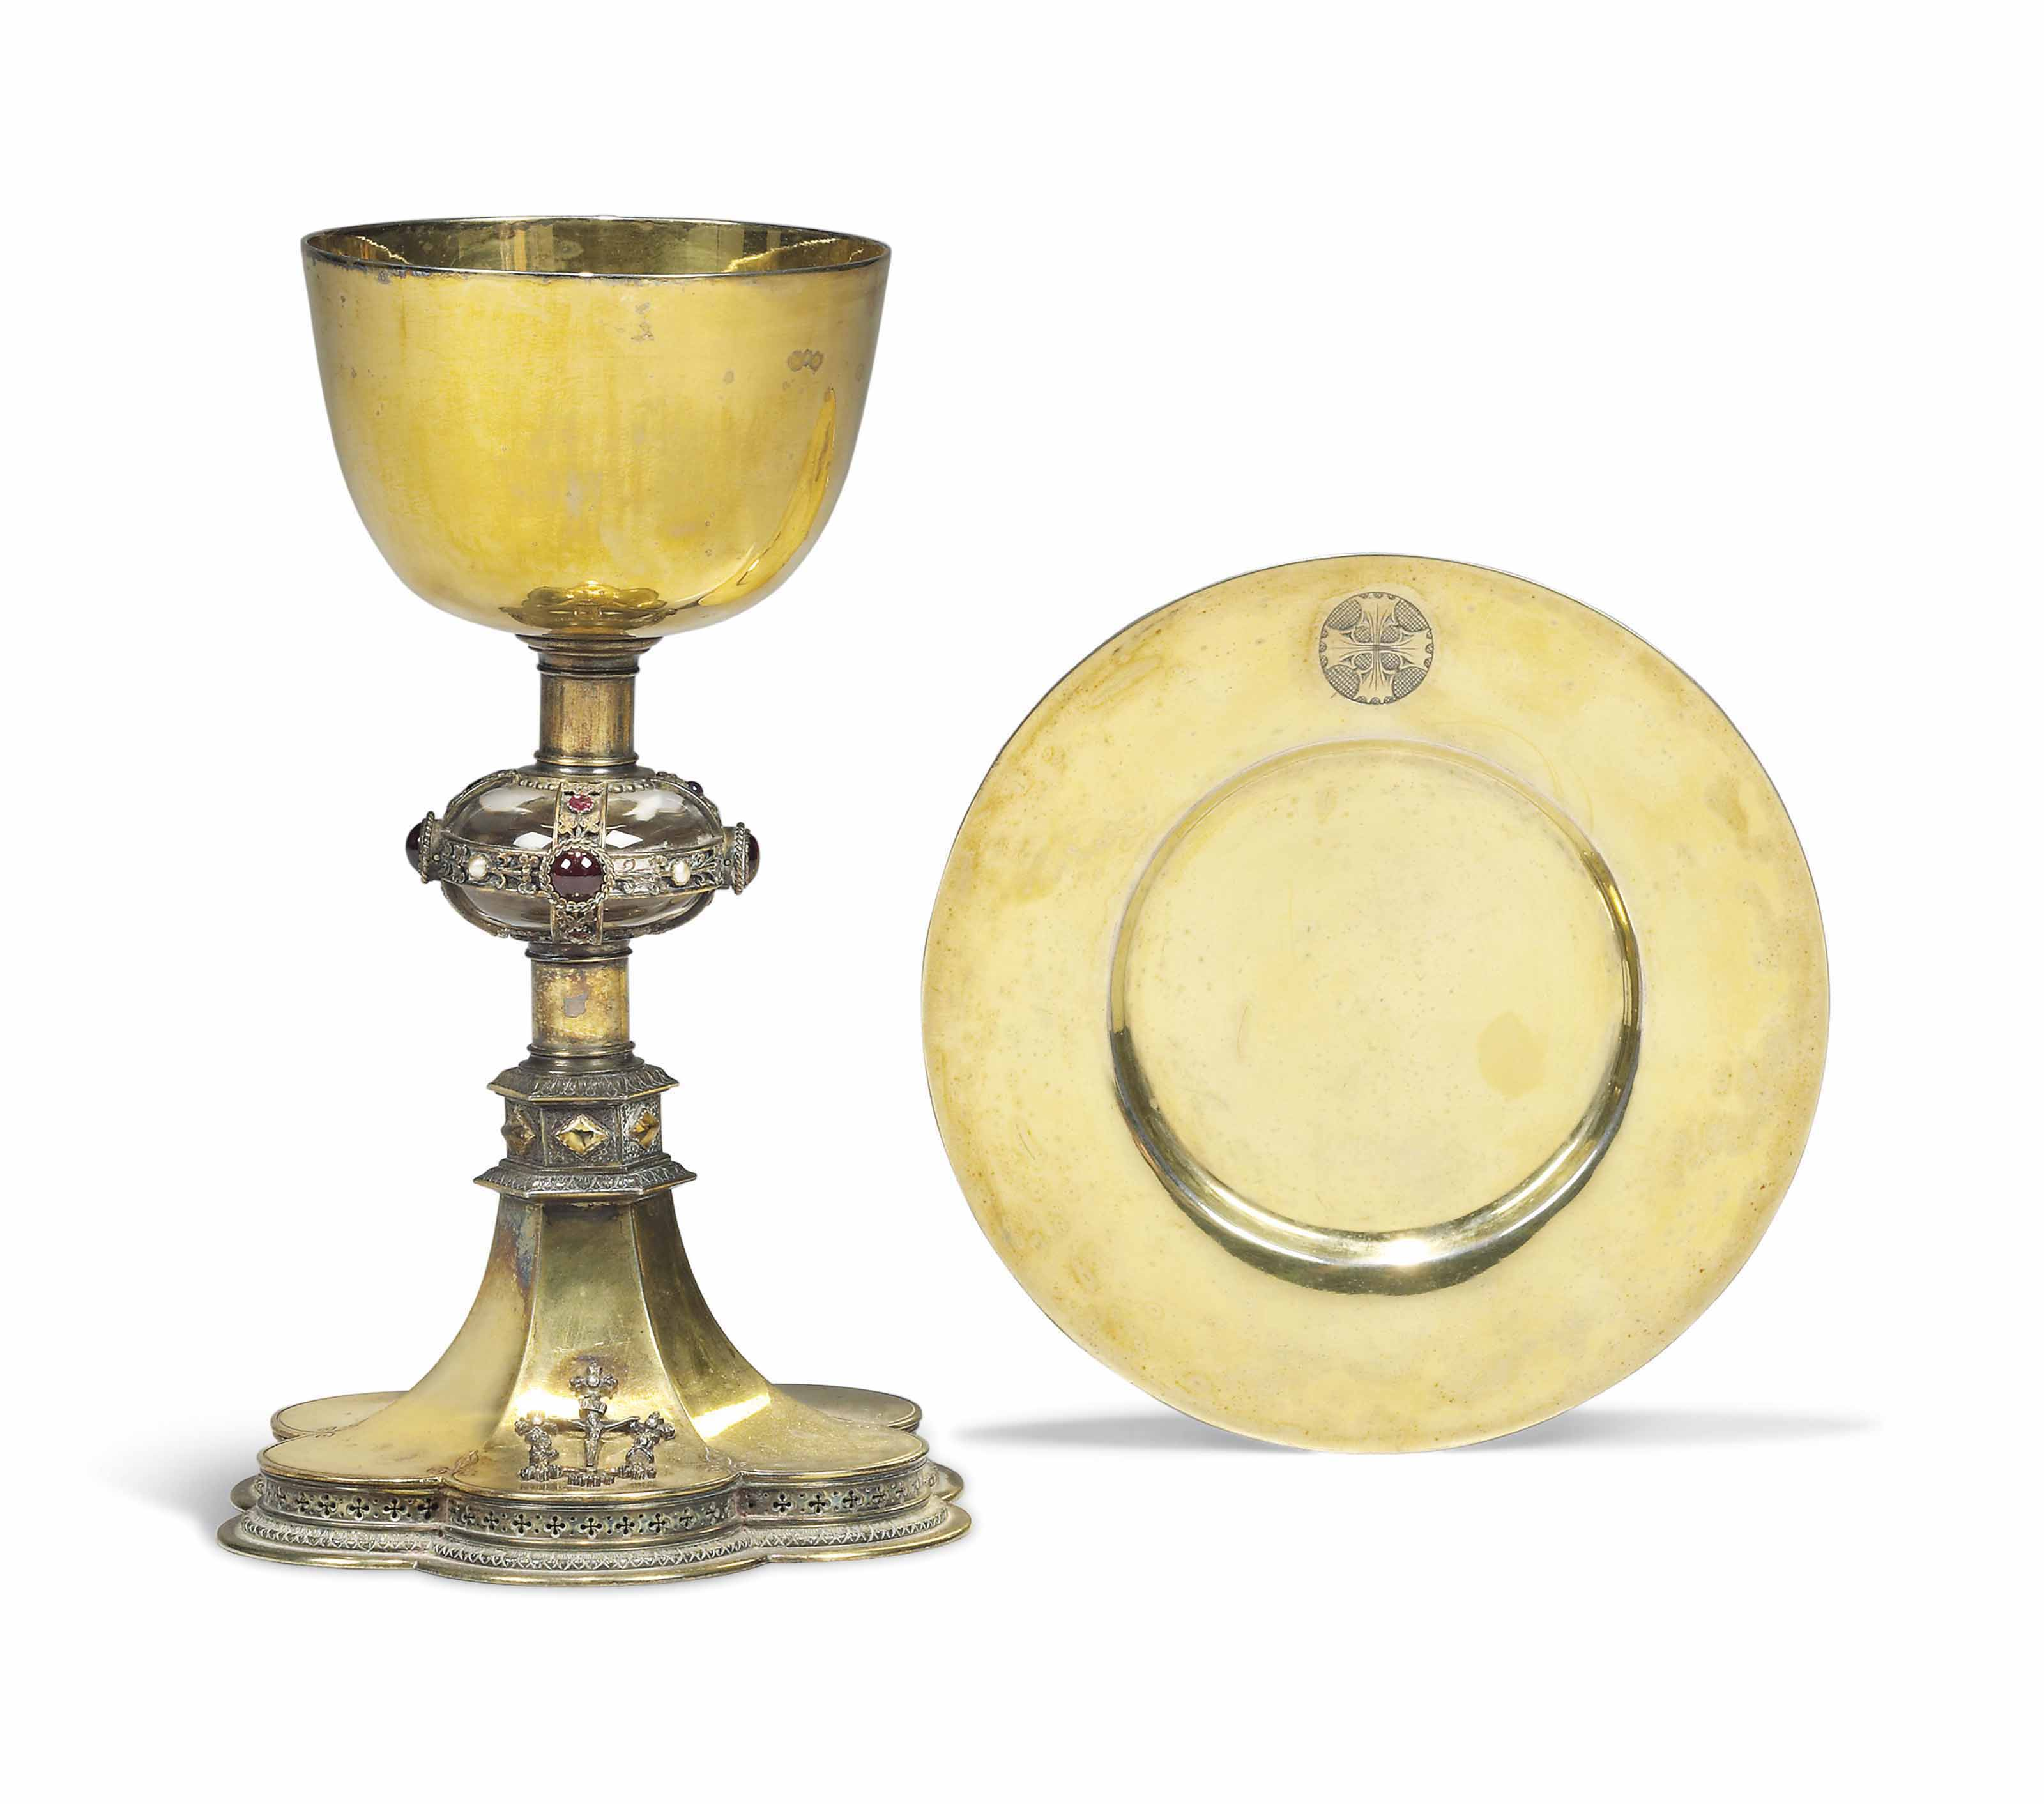 A VICTORIAN JEWELLED SILVER-GILT CHALICE AND PATEN